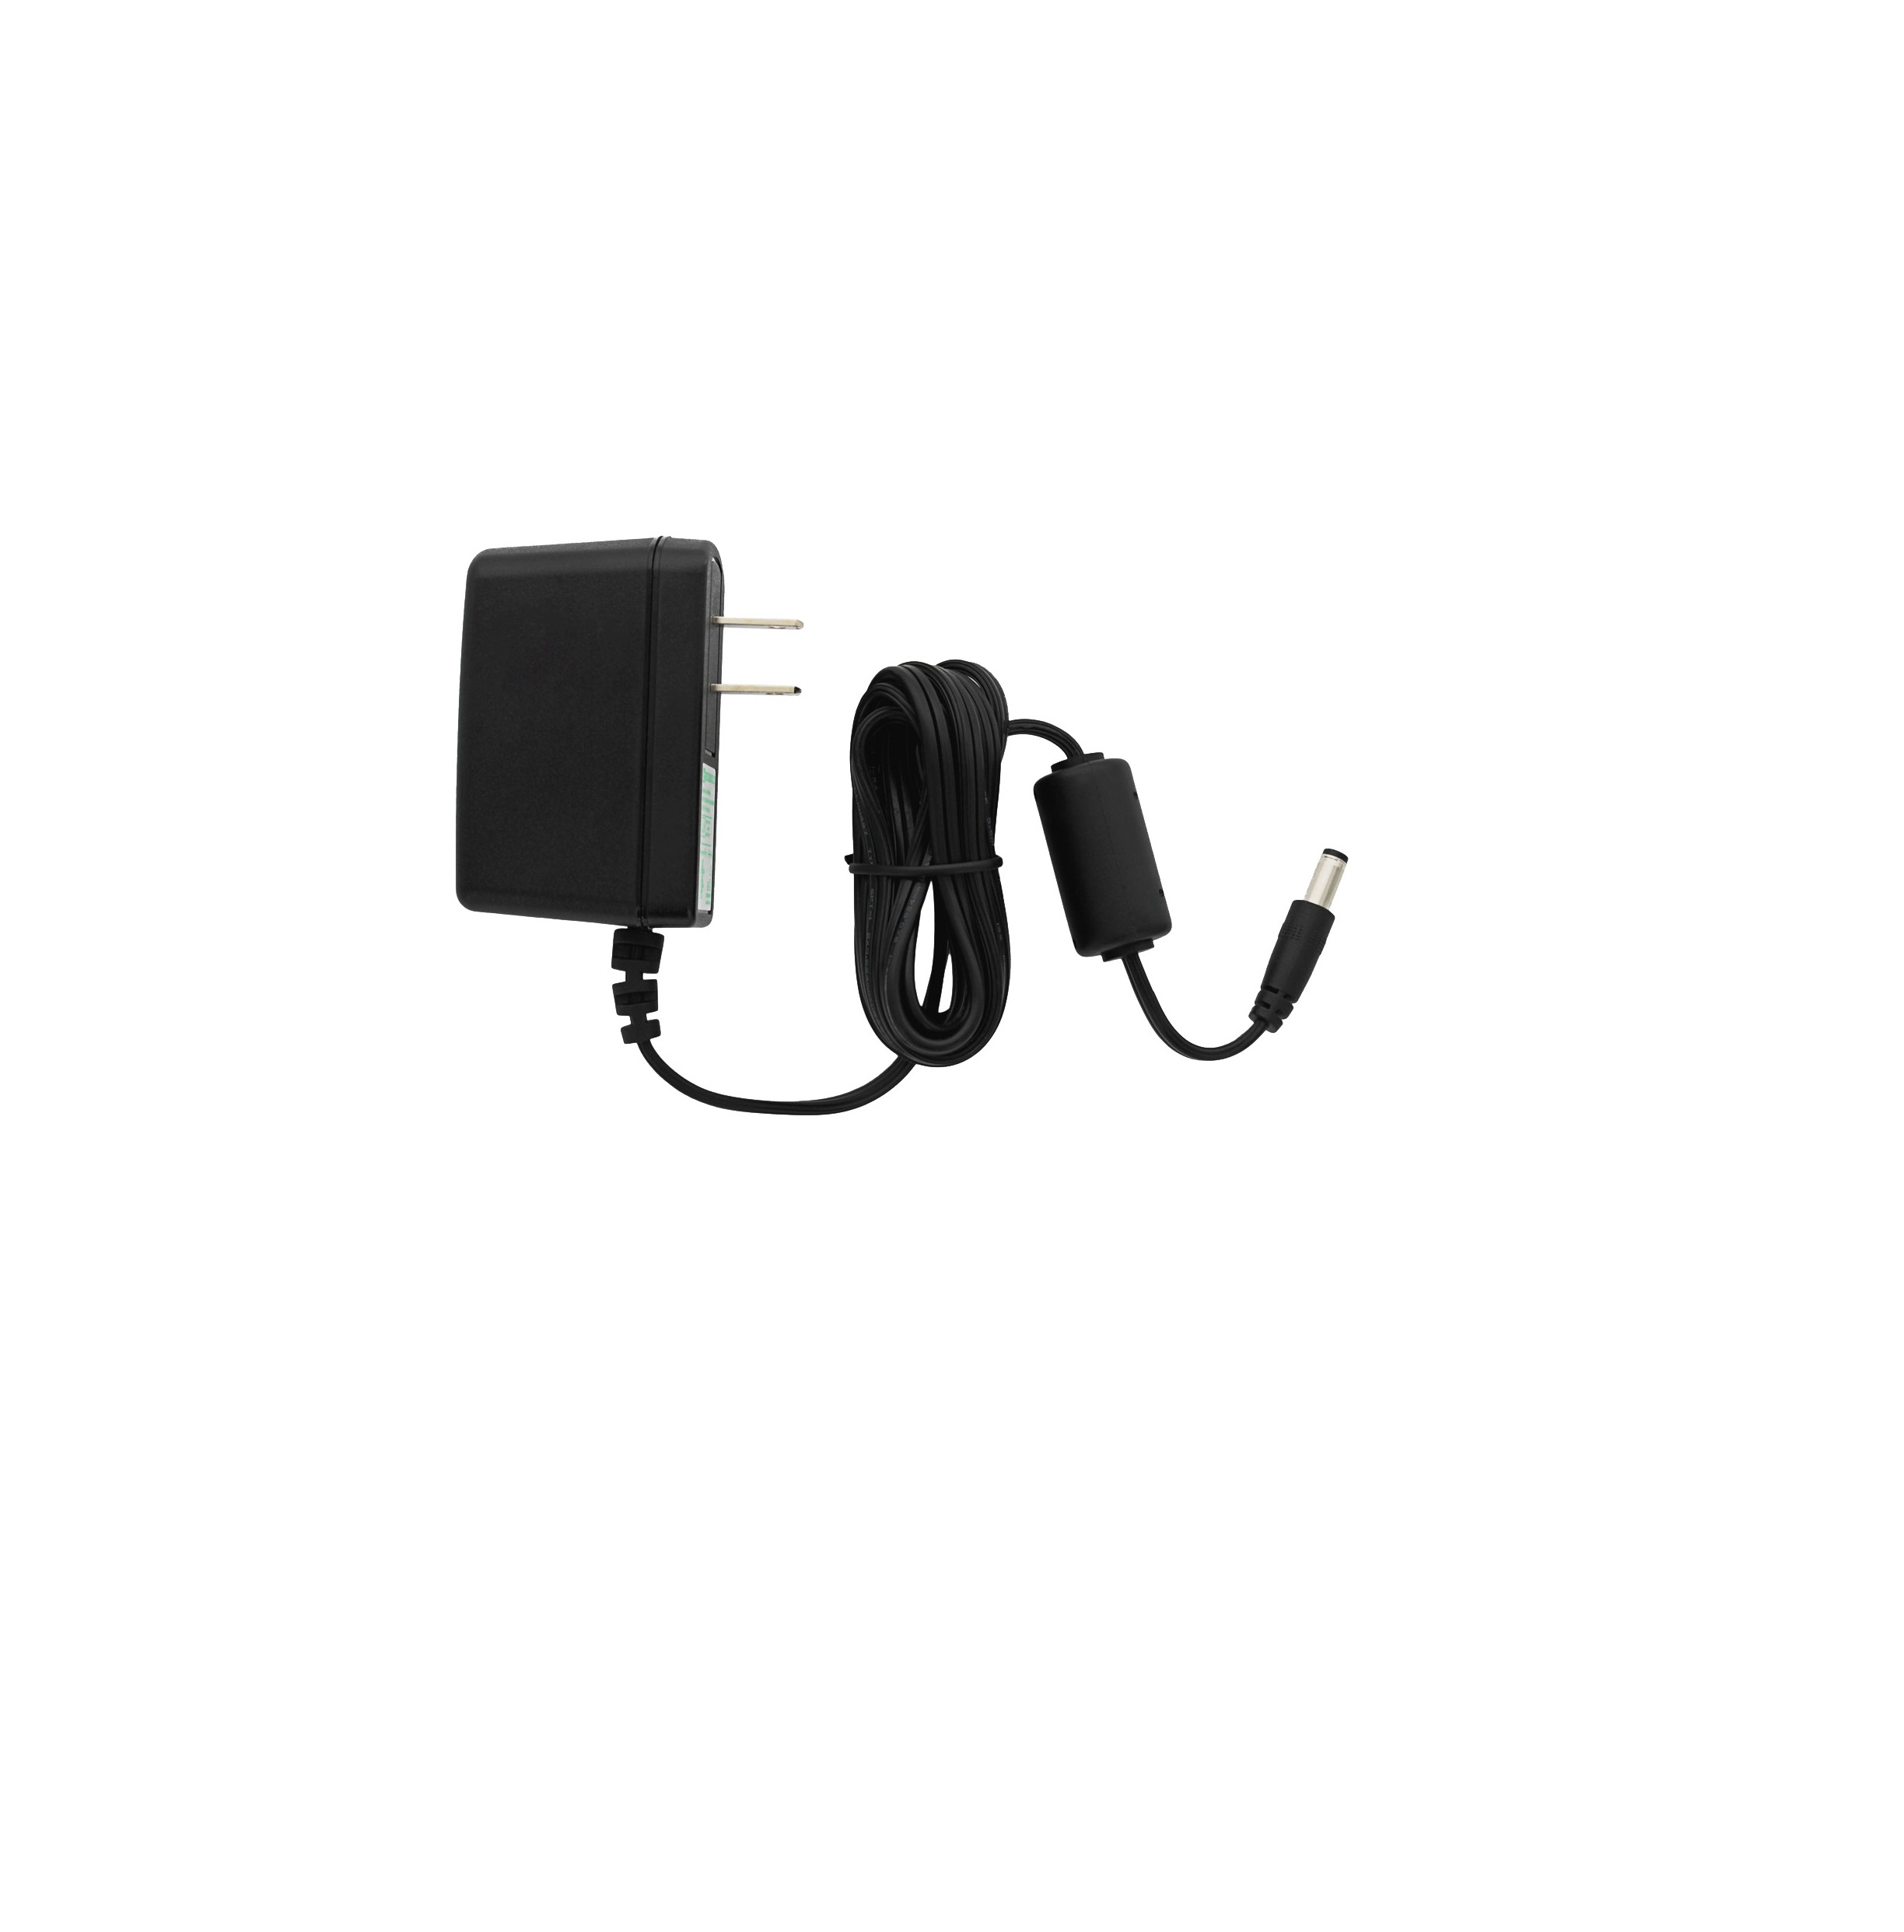 12 Volt Power Adapter 12 Volt Ac Dc Power Supply 859903 Cellular Outlet